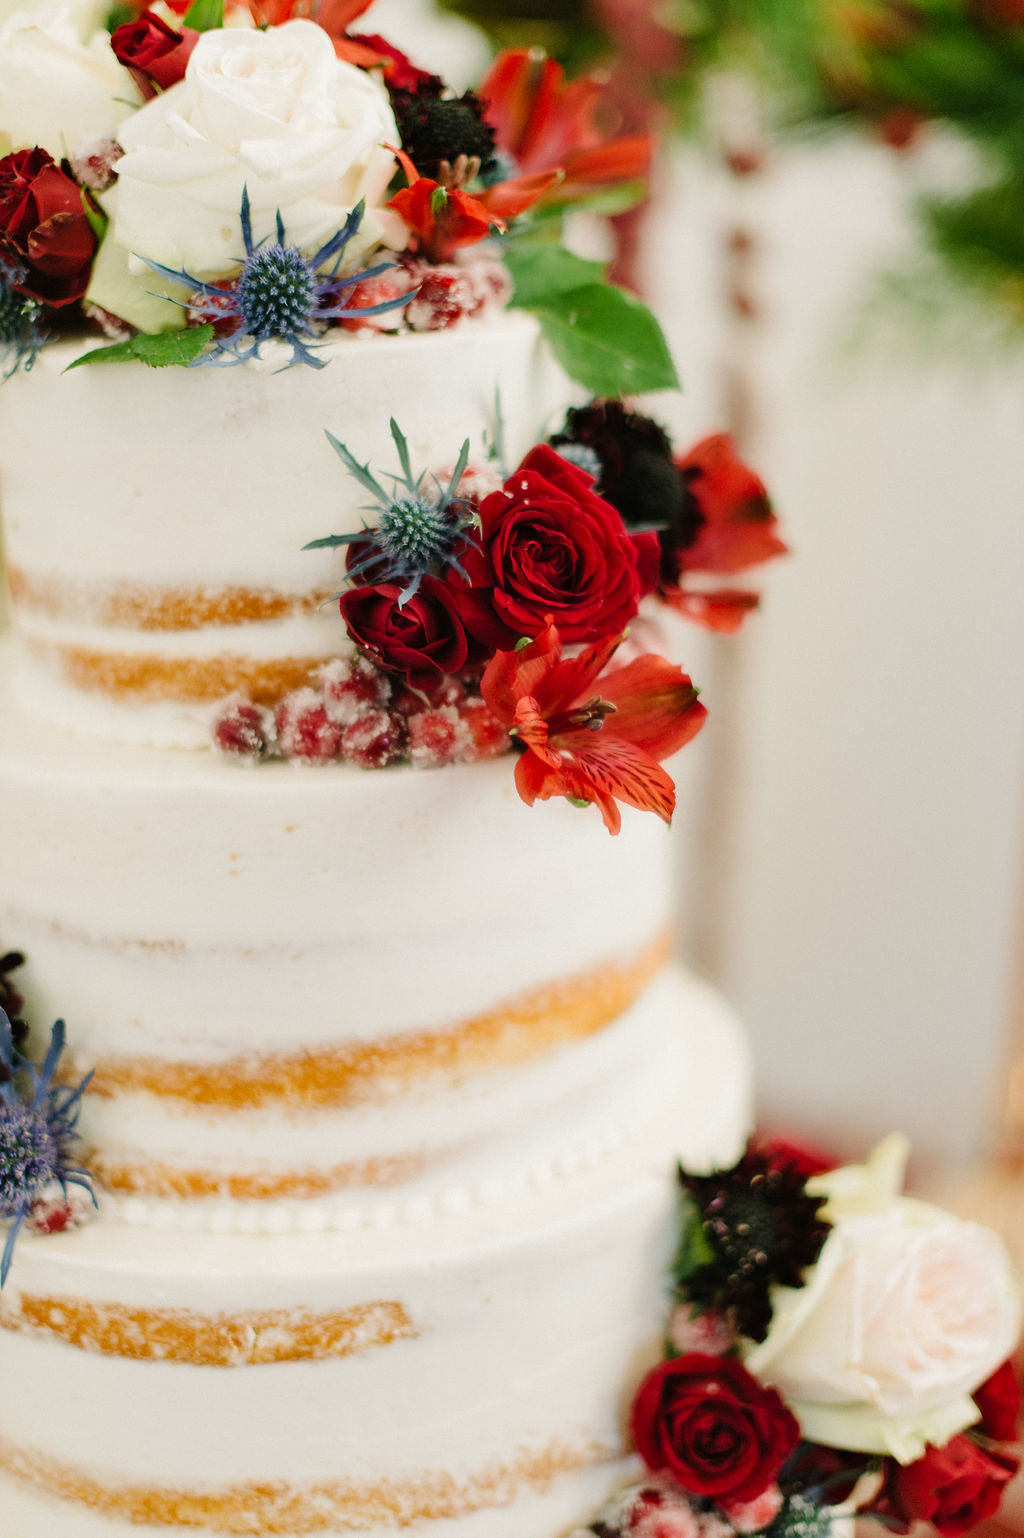 Wedding Cake by Blue Cake Co. / Tyler Rosenthal Photography